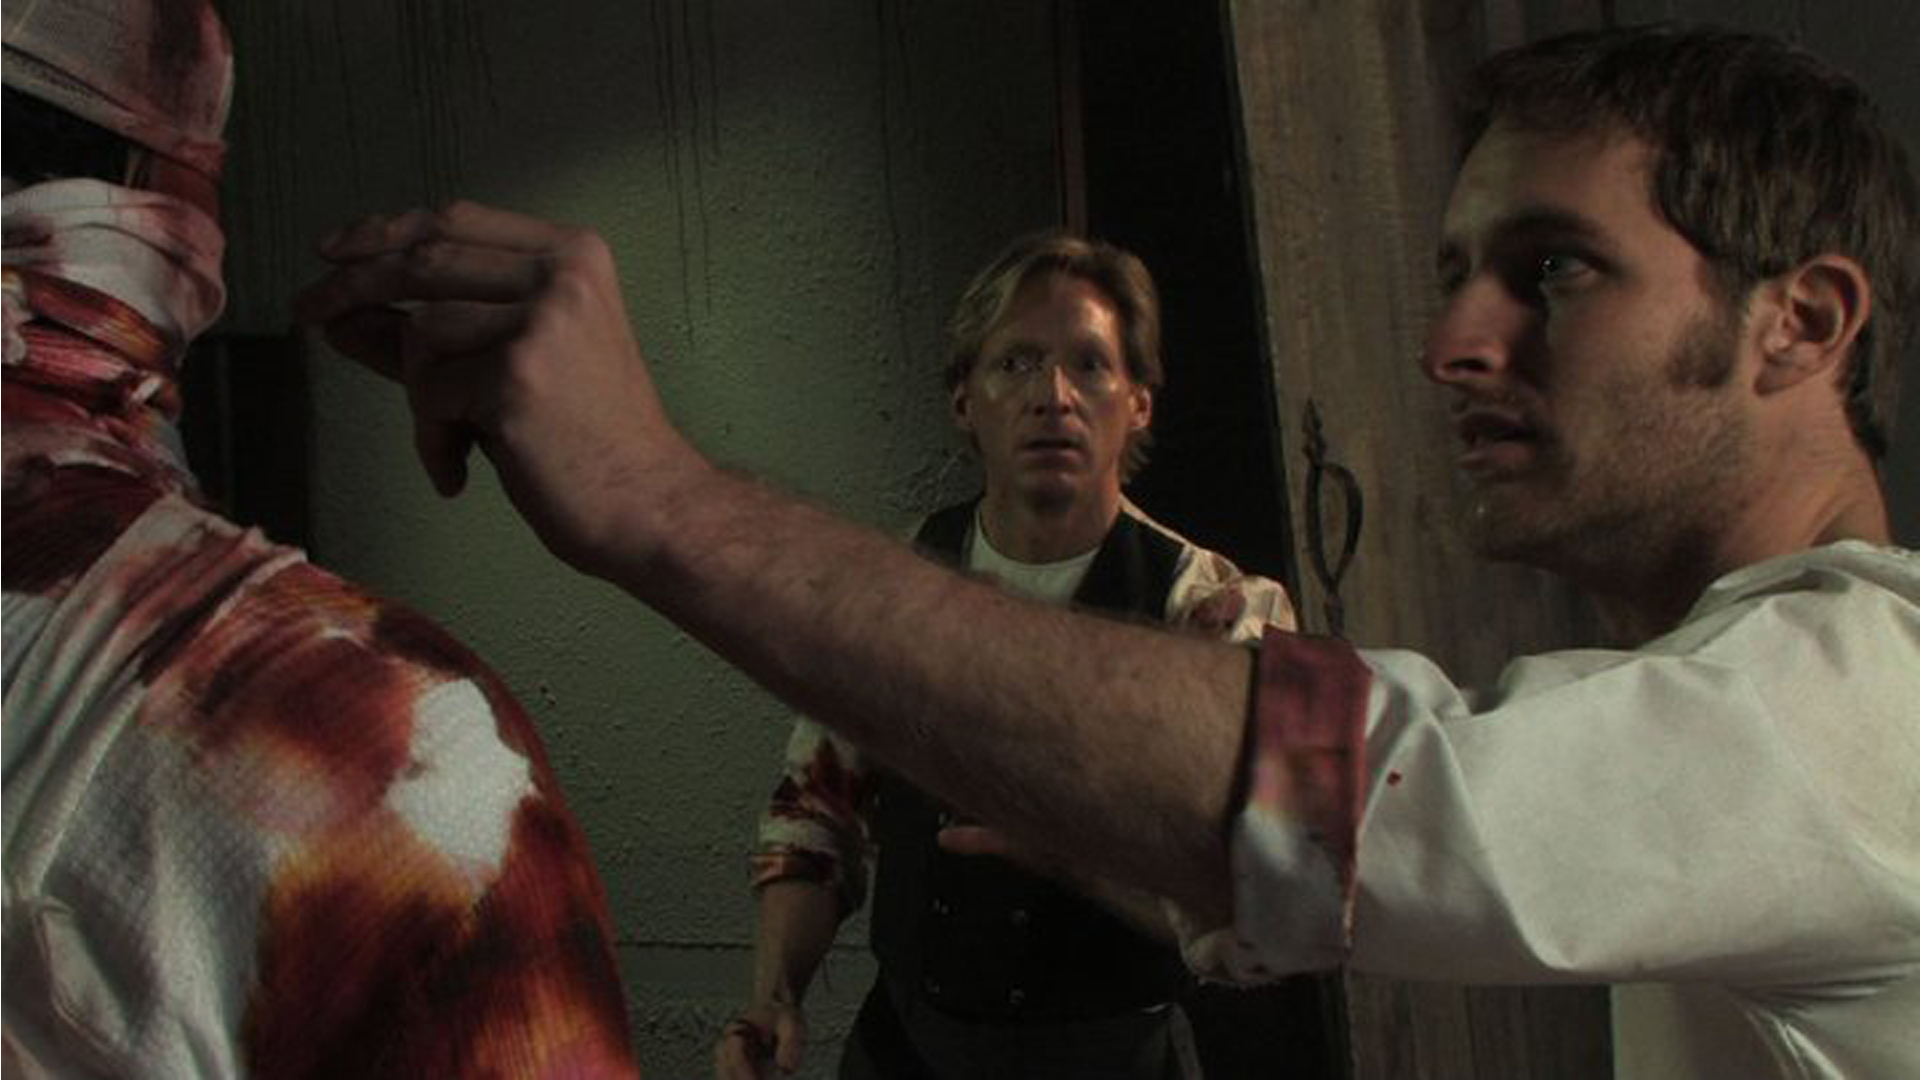 Victor Frankenstein (Adam Stephenson) unveils his creation while manservant Jay Disney looks on in Frankenstein: Day of the Beast (2011)